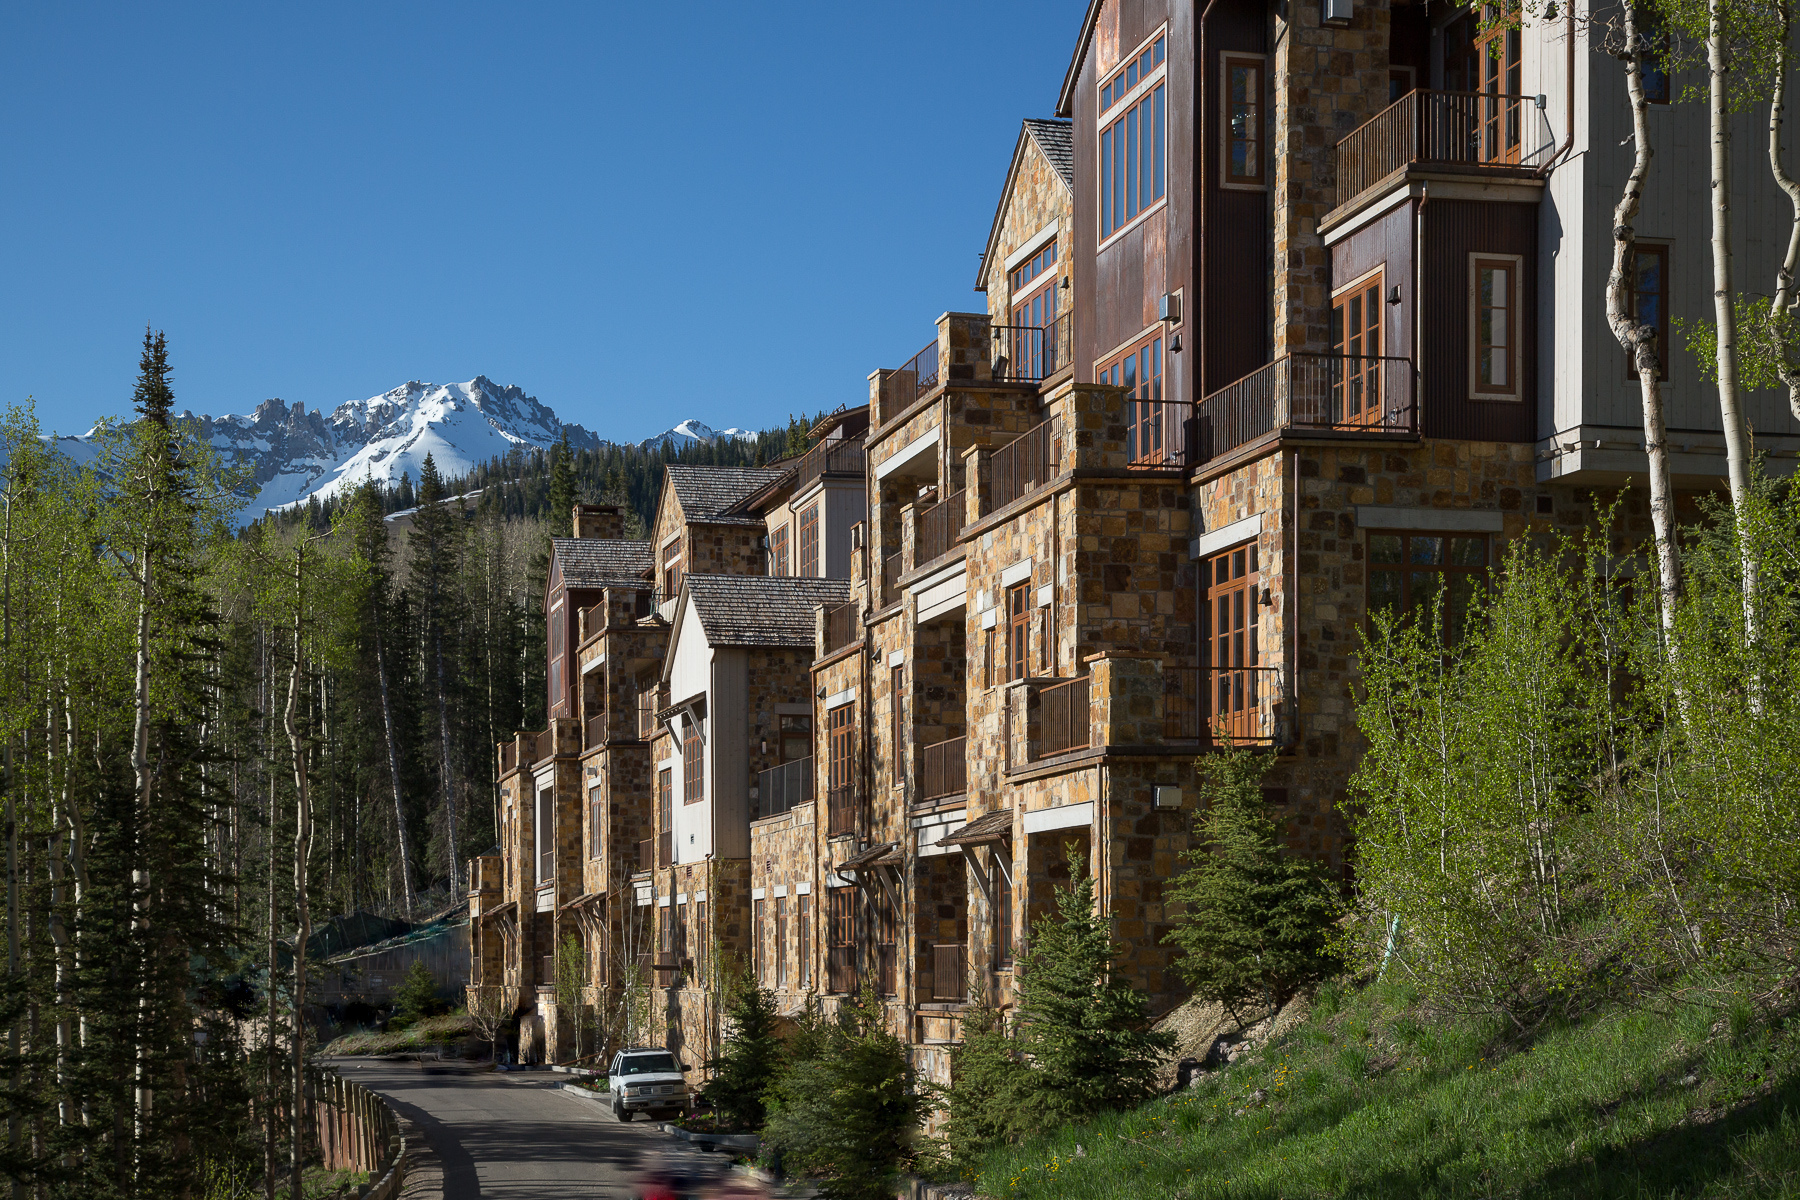 Single Family Home for Sale at Villas At Cortina 125 Cortina Drive Unit 5 Telluride, Colorado, 81435 United States